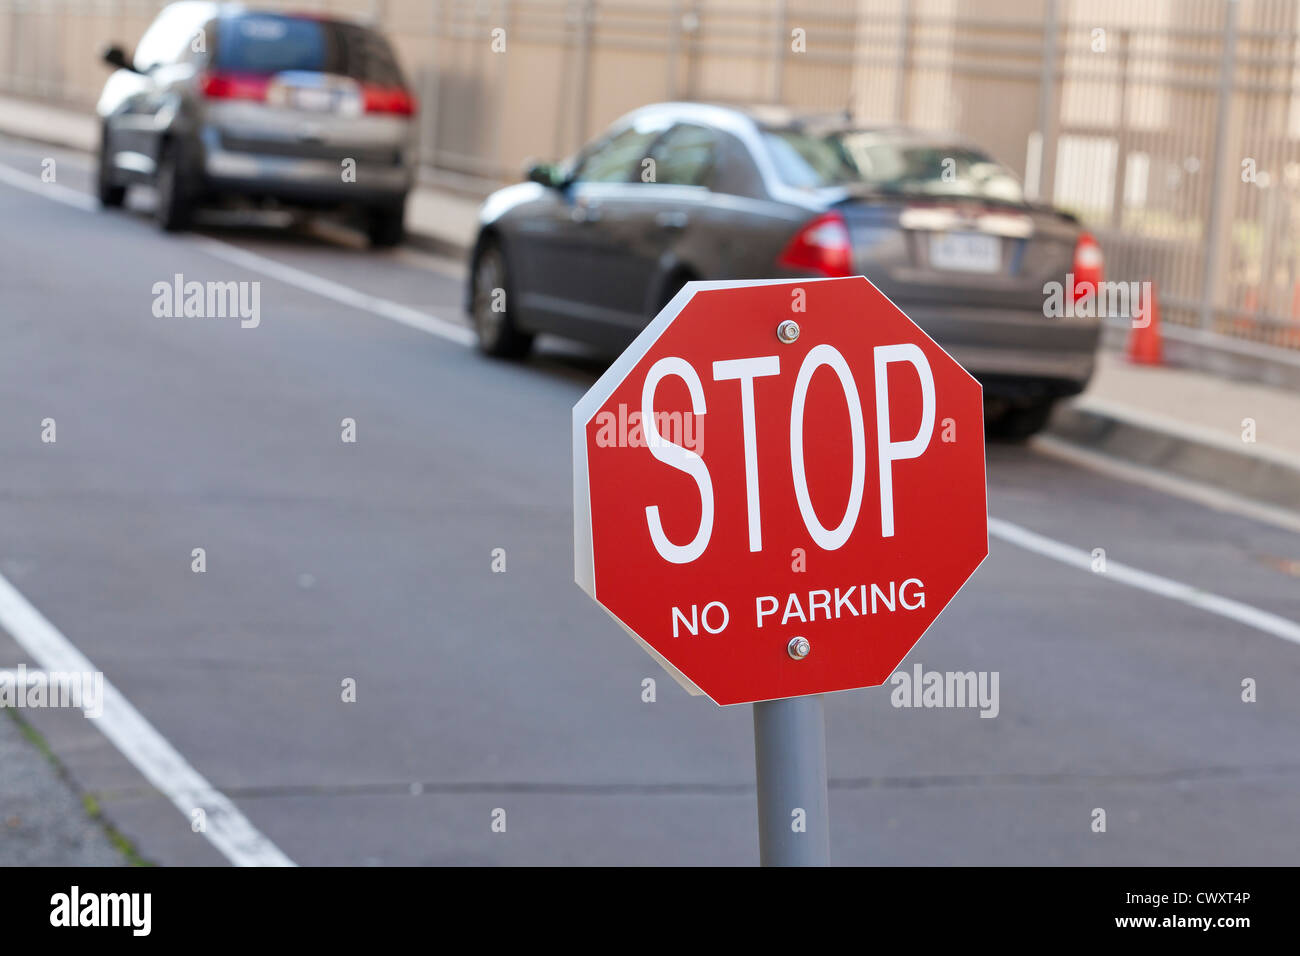 Stop - No Parking sign in alley - Stock Image